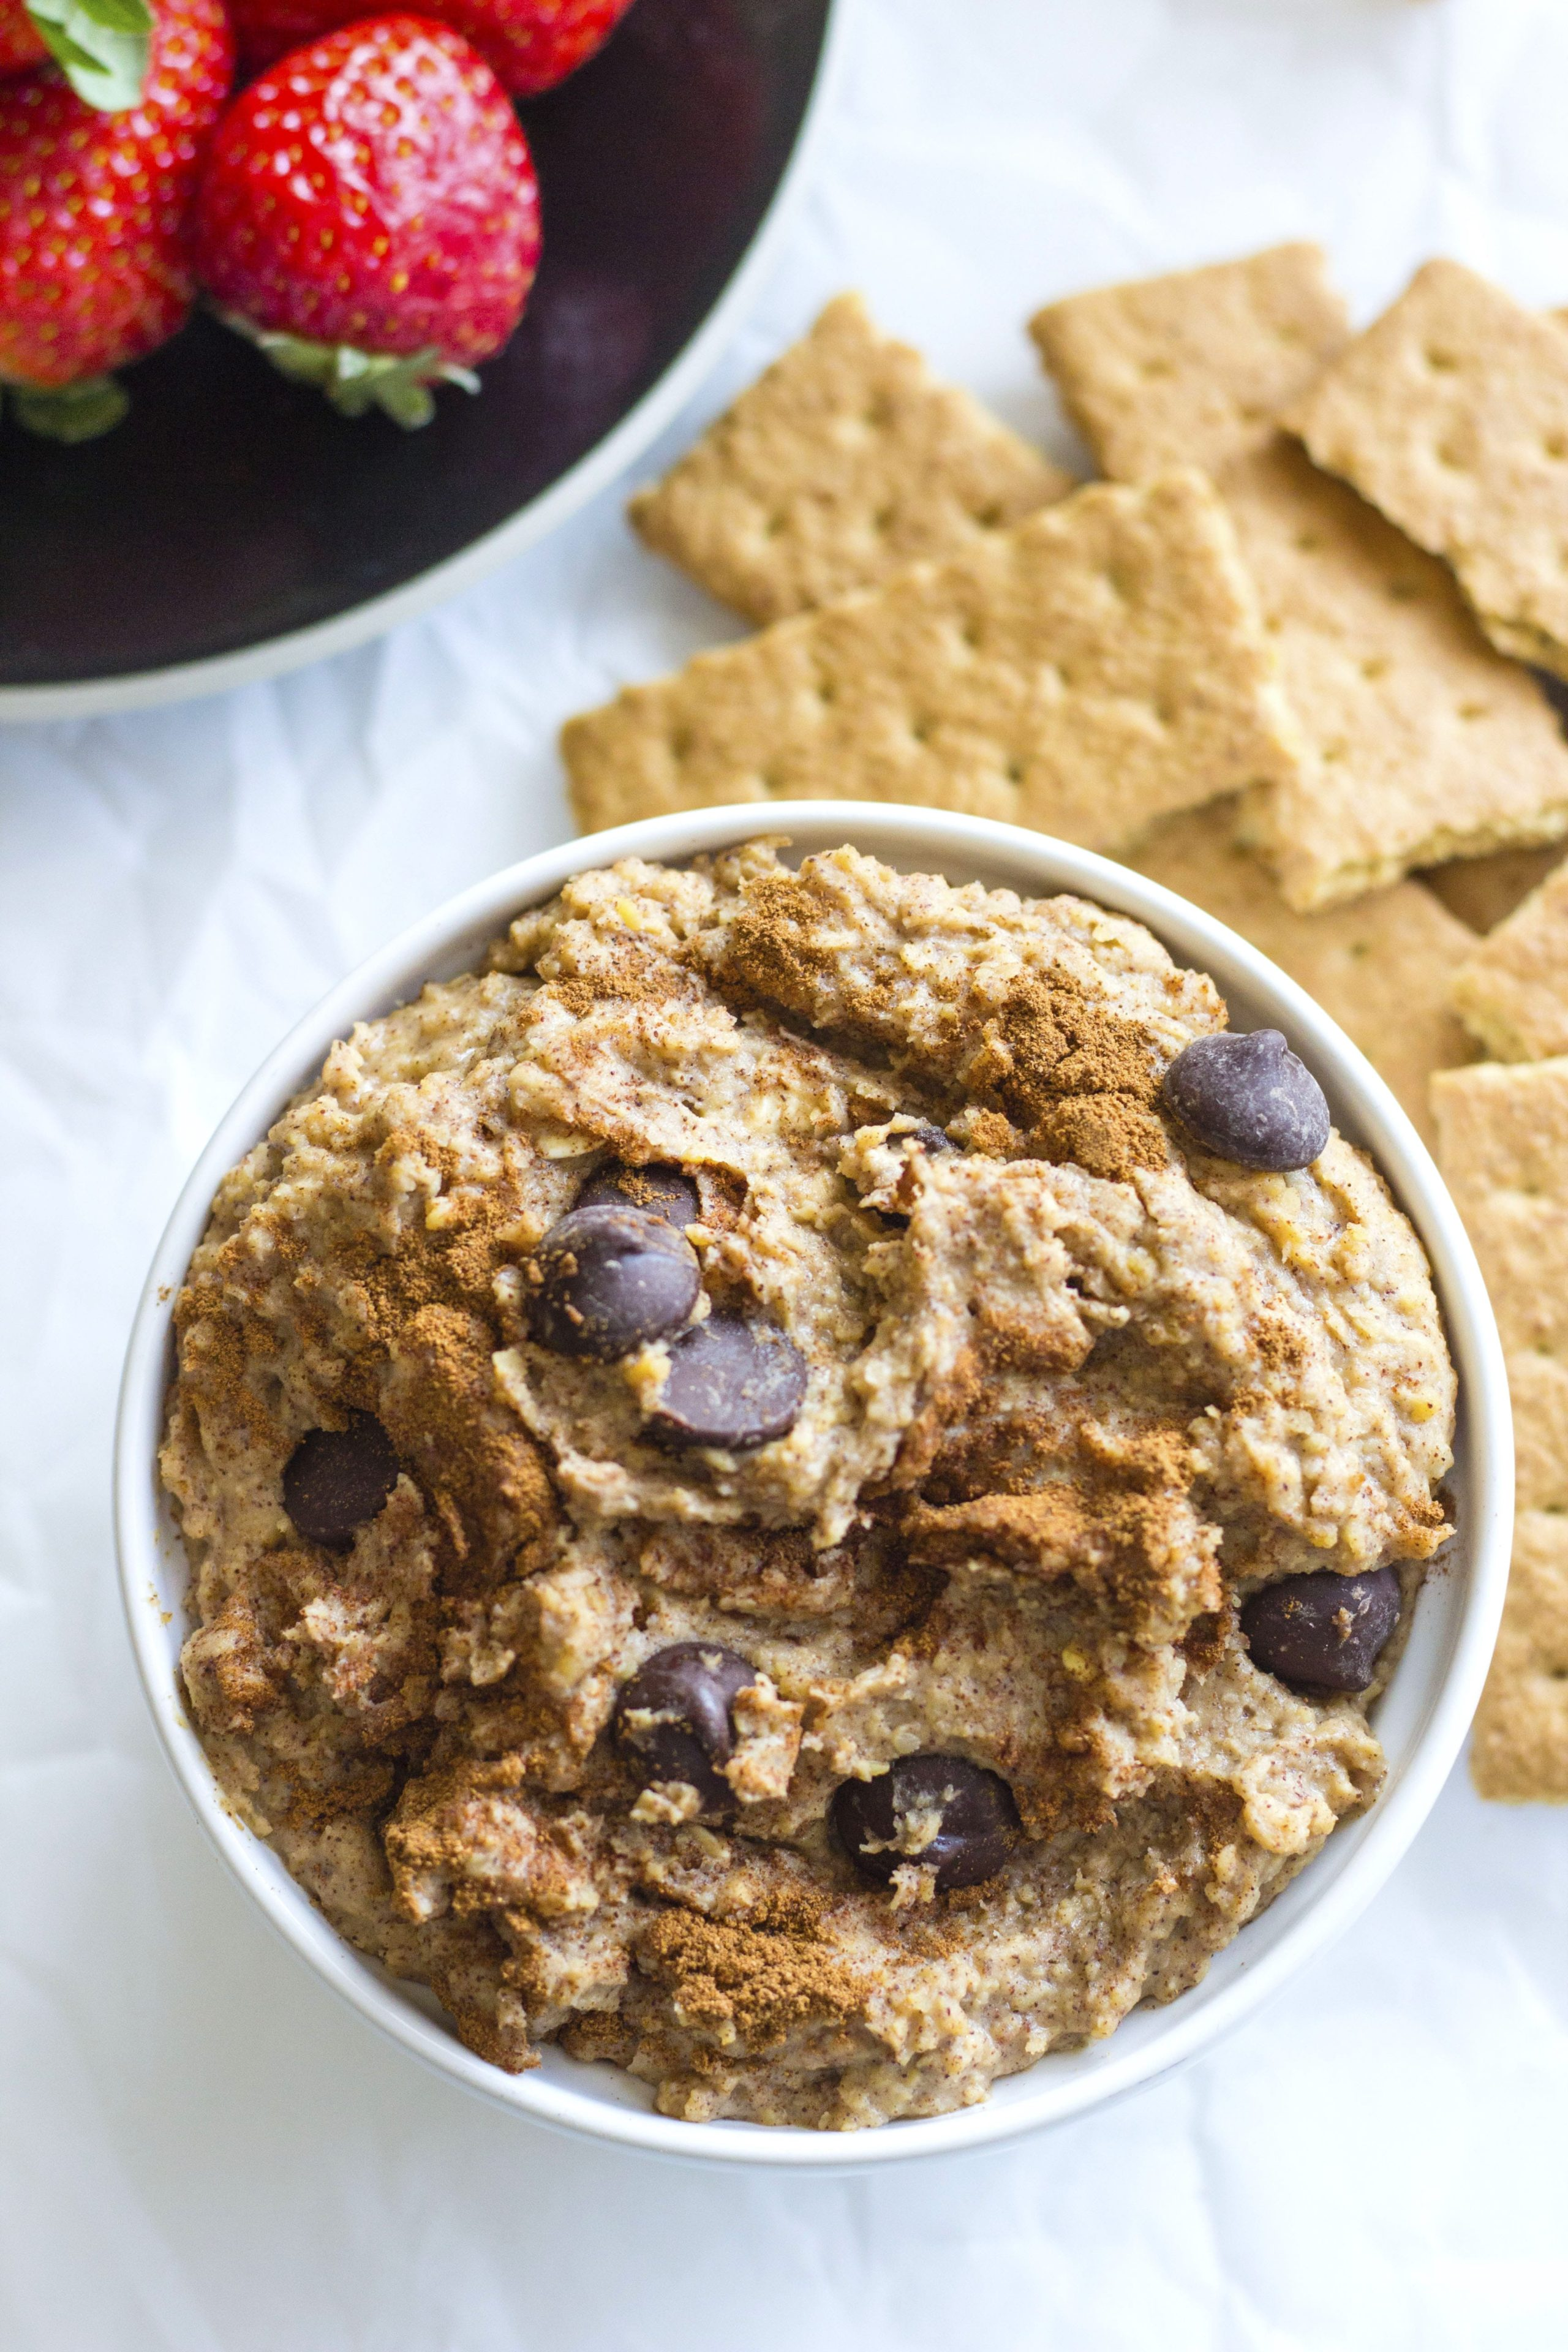 Cinnamon Chocolate Chip Chickpea Dip | A sweet and healthy protein-packed snack dip or appetizer!